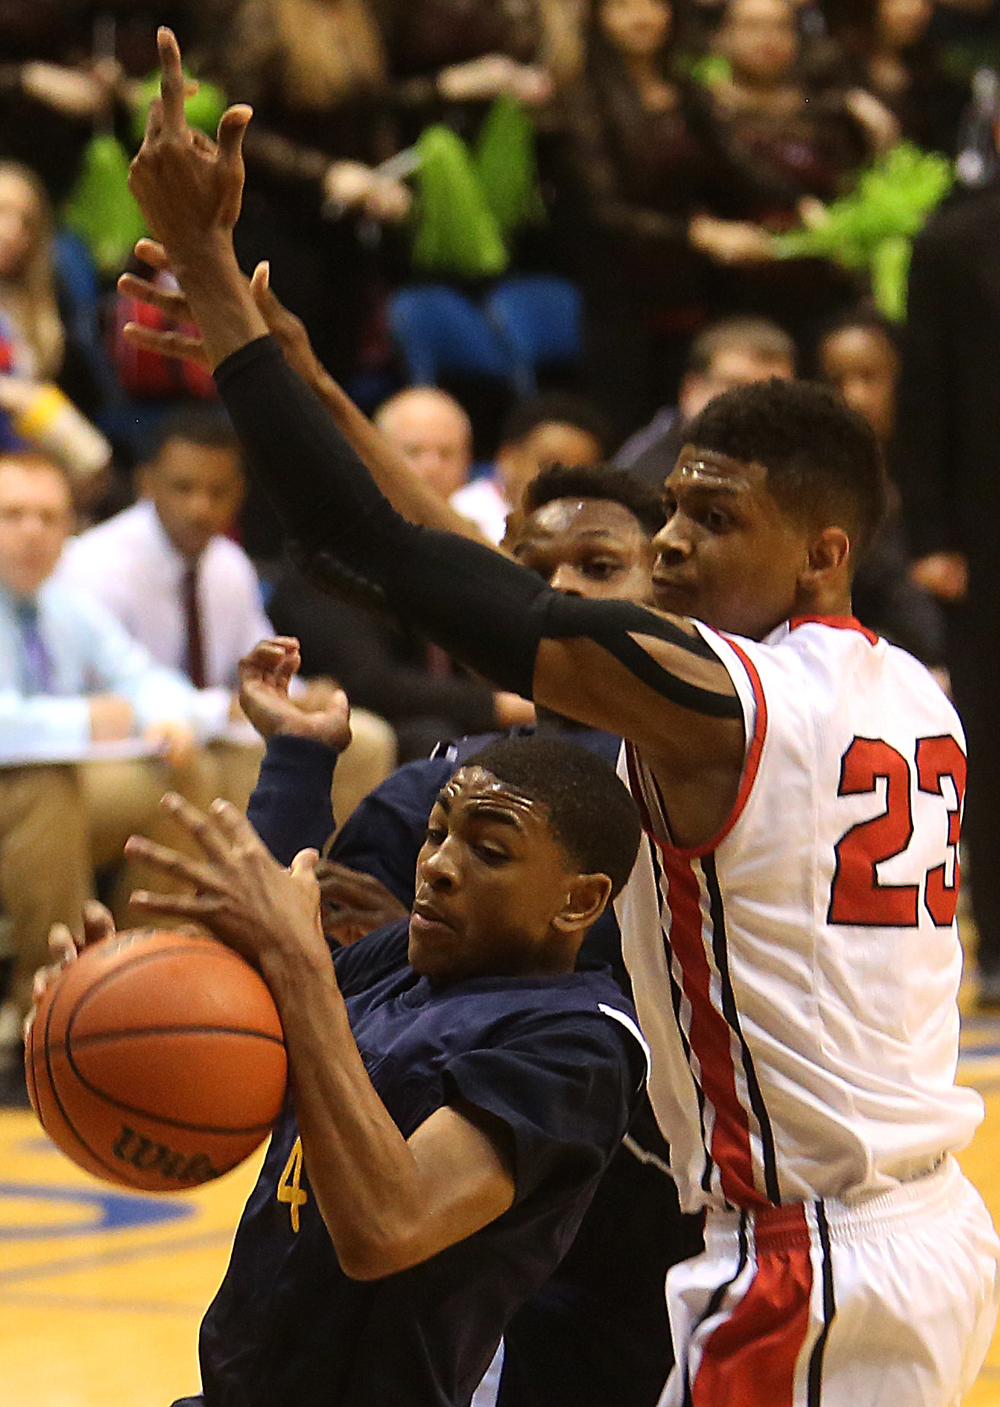 Southeast's Trevyon Williams tries to gain control of the ball while under pressure by Springfield's Obediah Church. Springfield High School defeated Southeast 66-55 during first night action at the Boys City Basketball Tournament at the Prairie Capital Convention Center in Springfield on Thursday, Jan. 22, 2015. David Spencer/The State Journal-Register